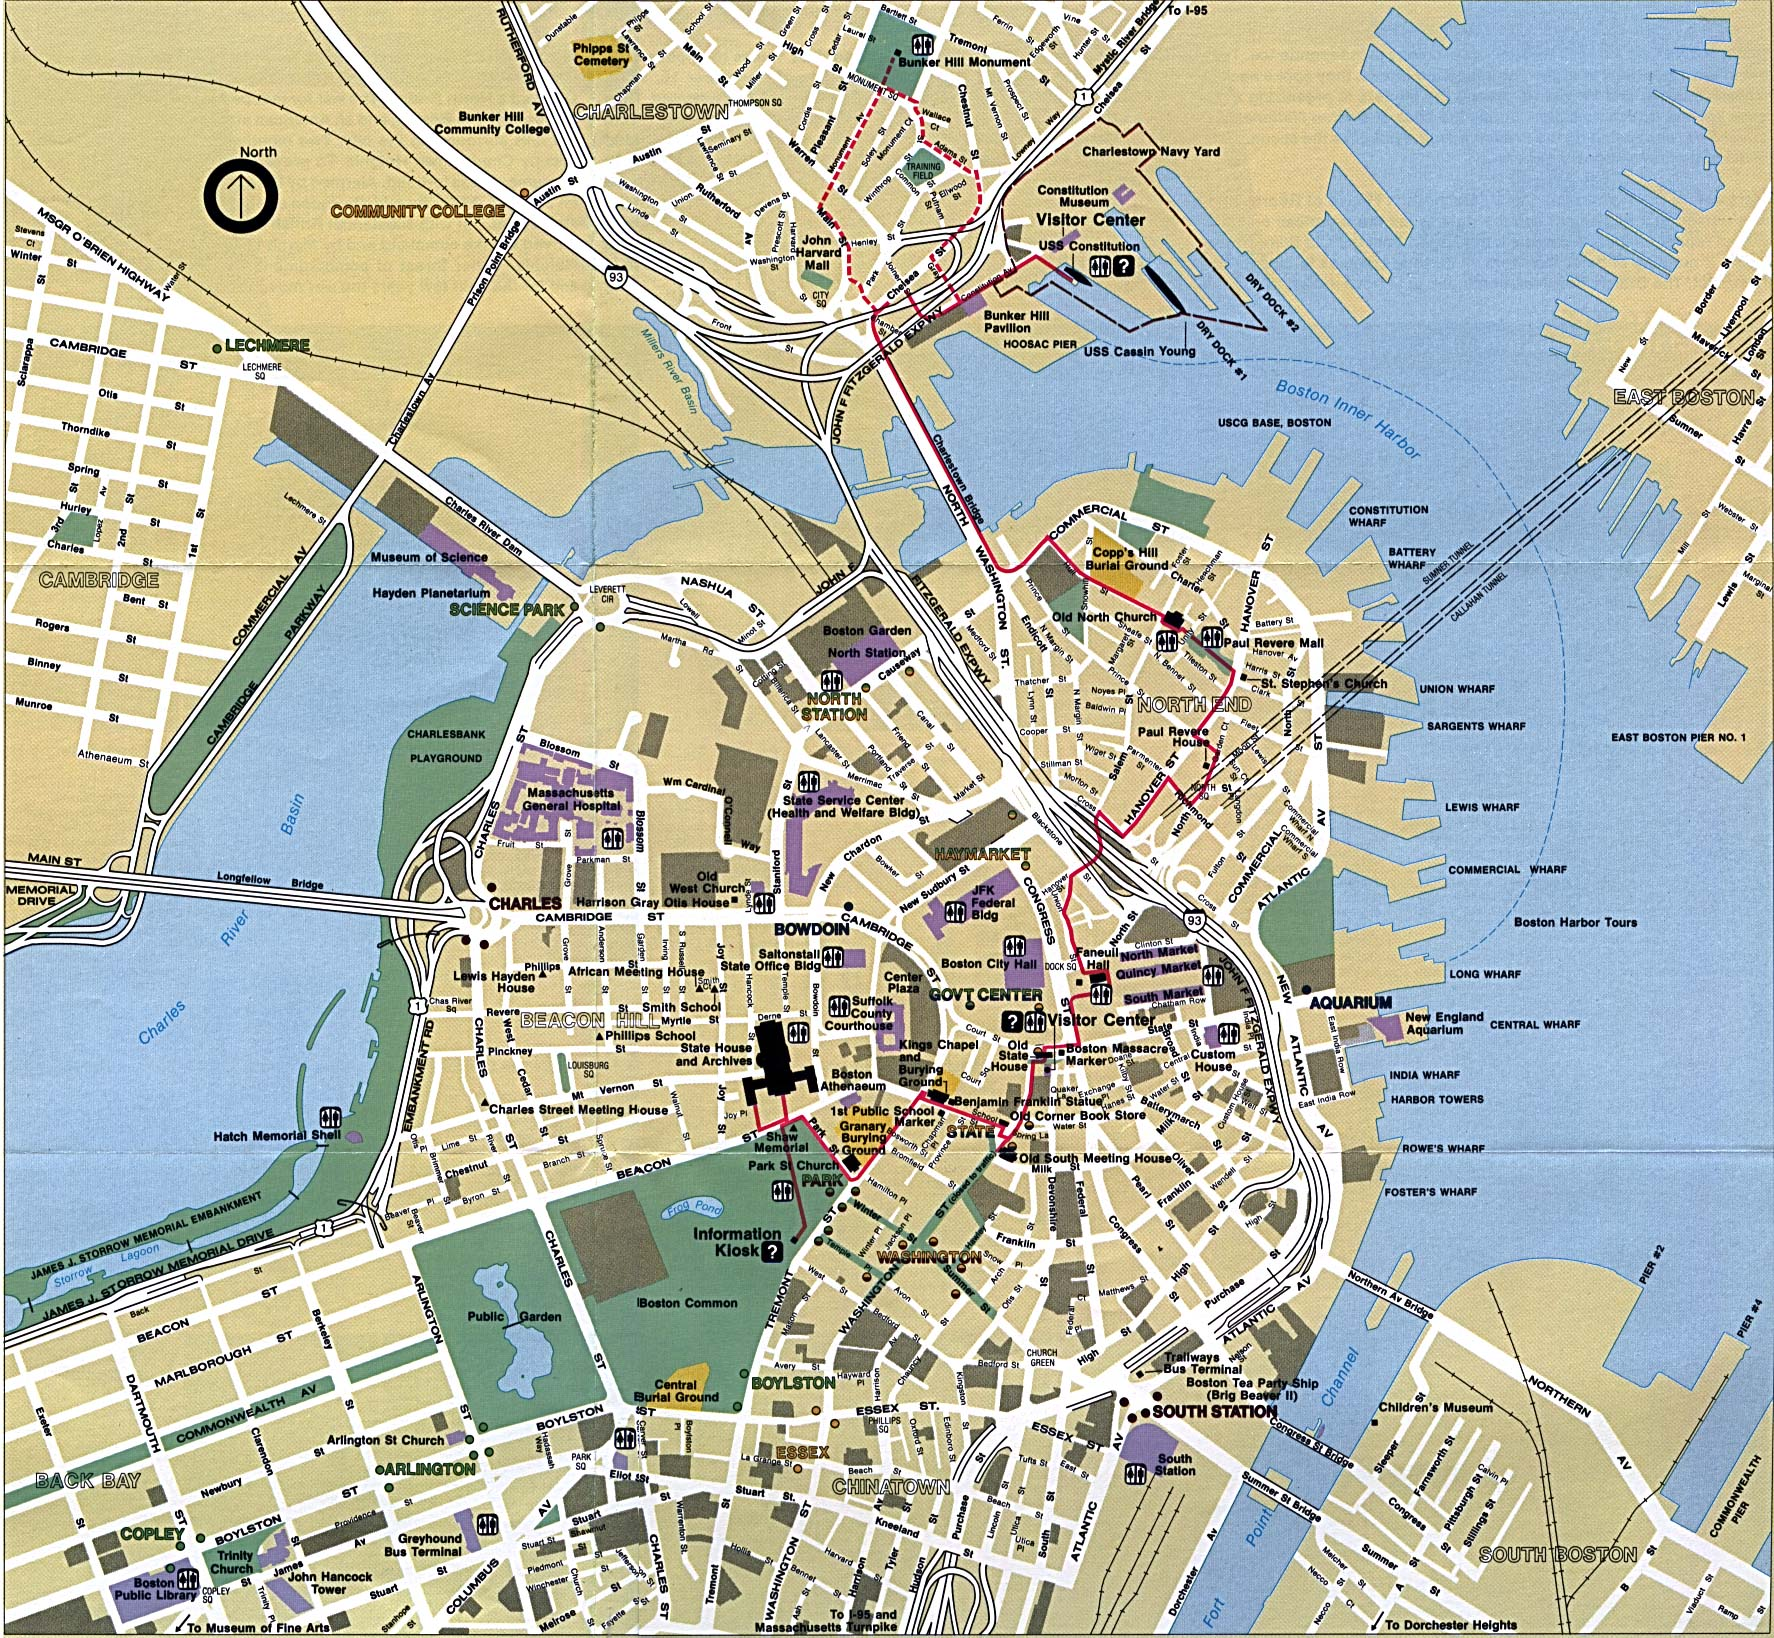 Maps Of Boston Boston Map   Detailed City and Metro Maps of Boston for Download  Maps Of Boston